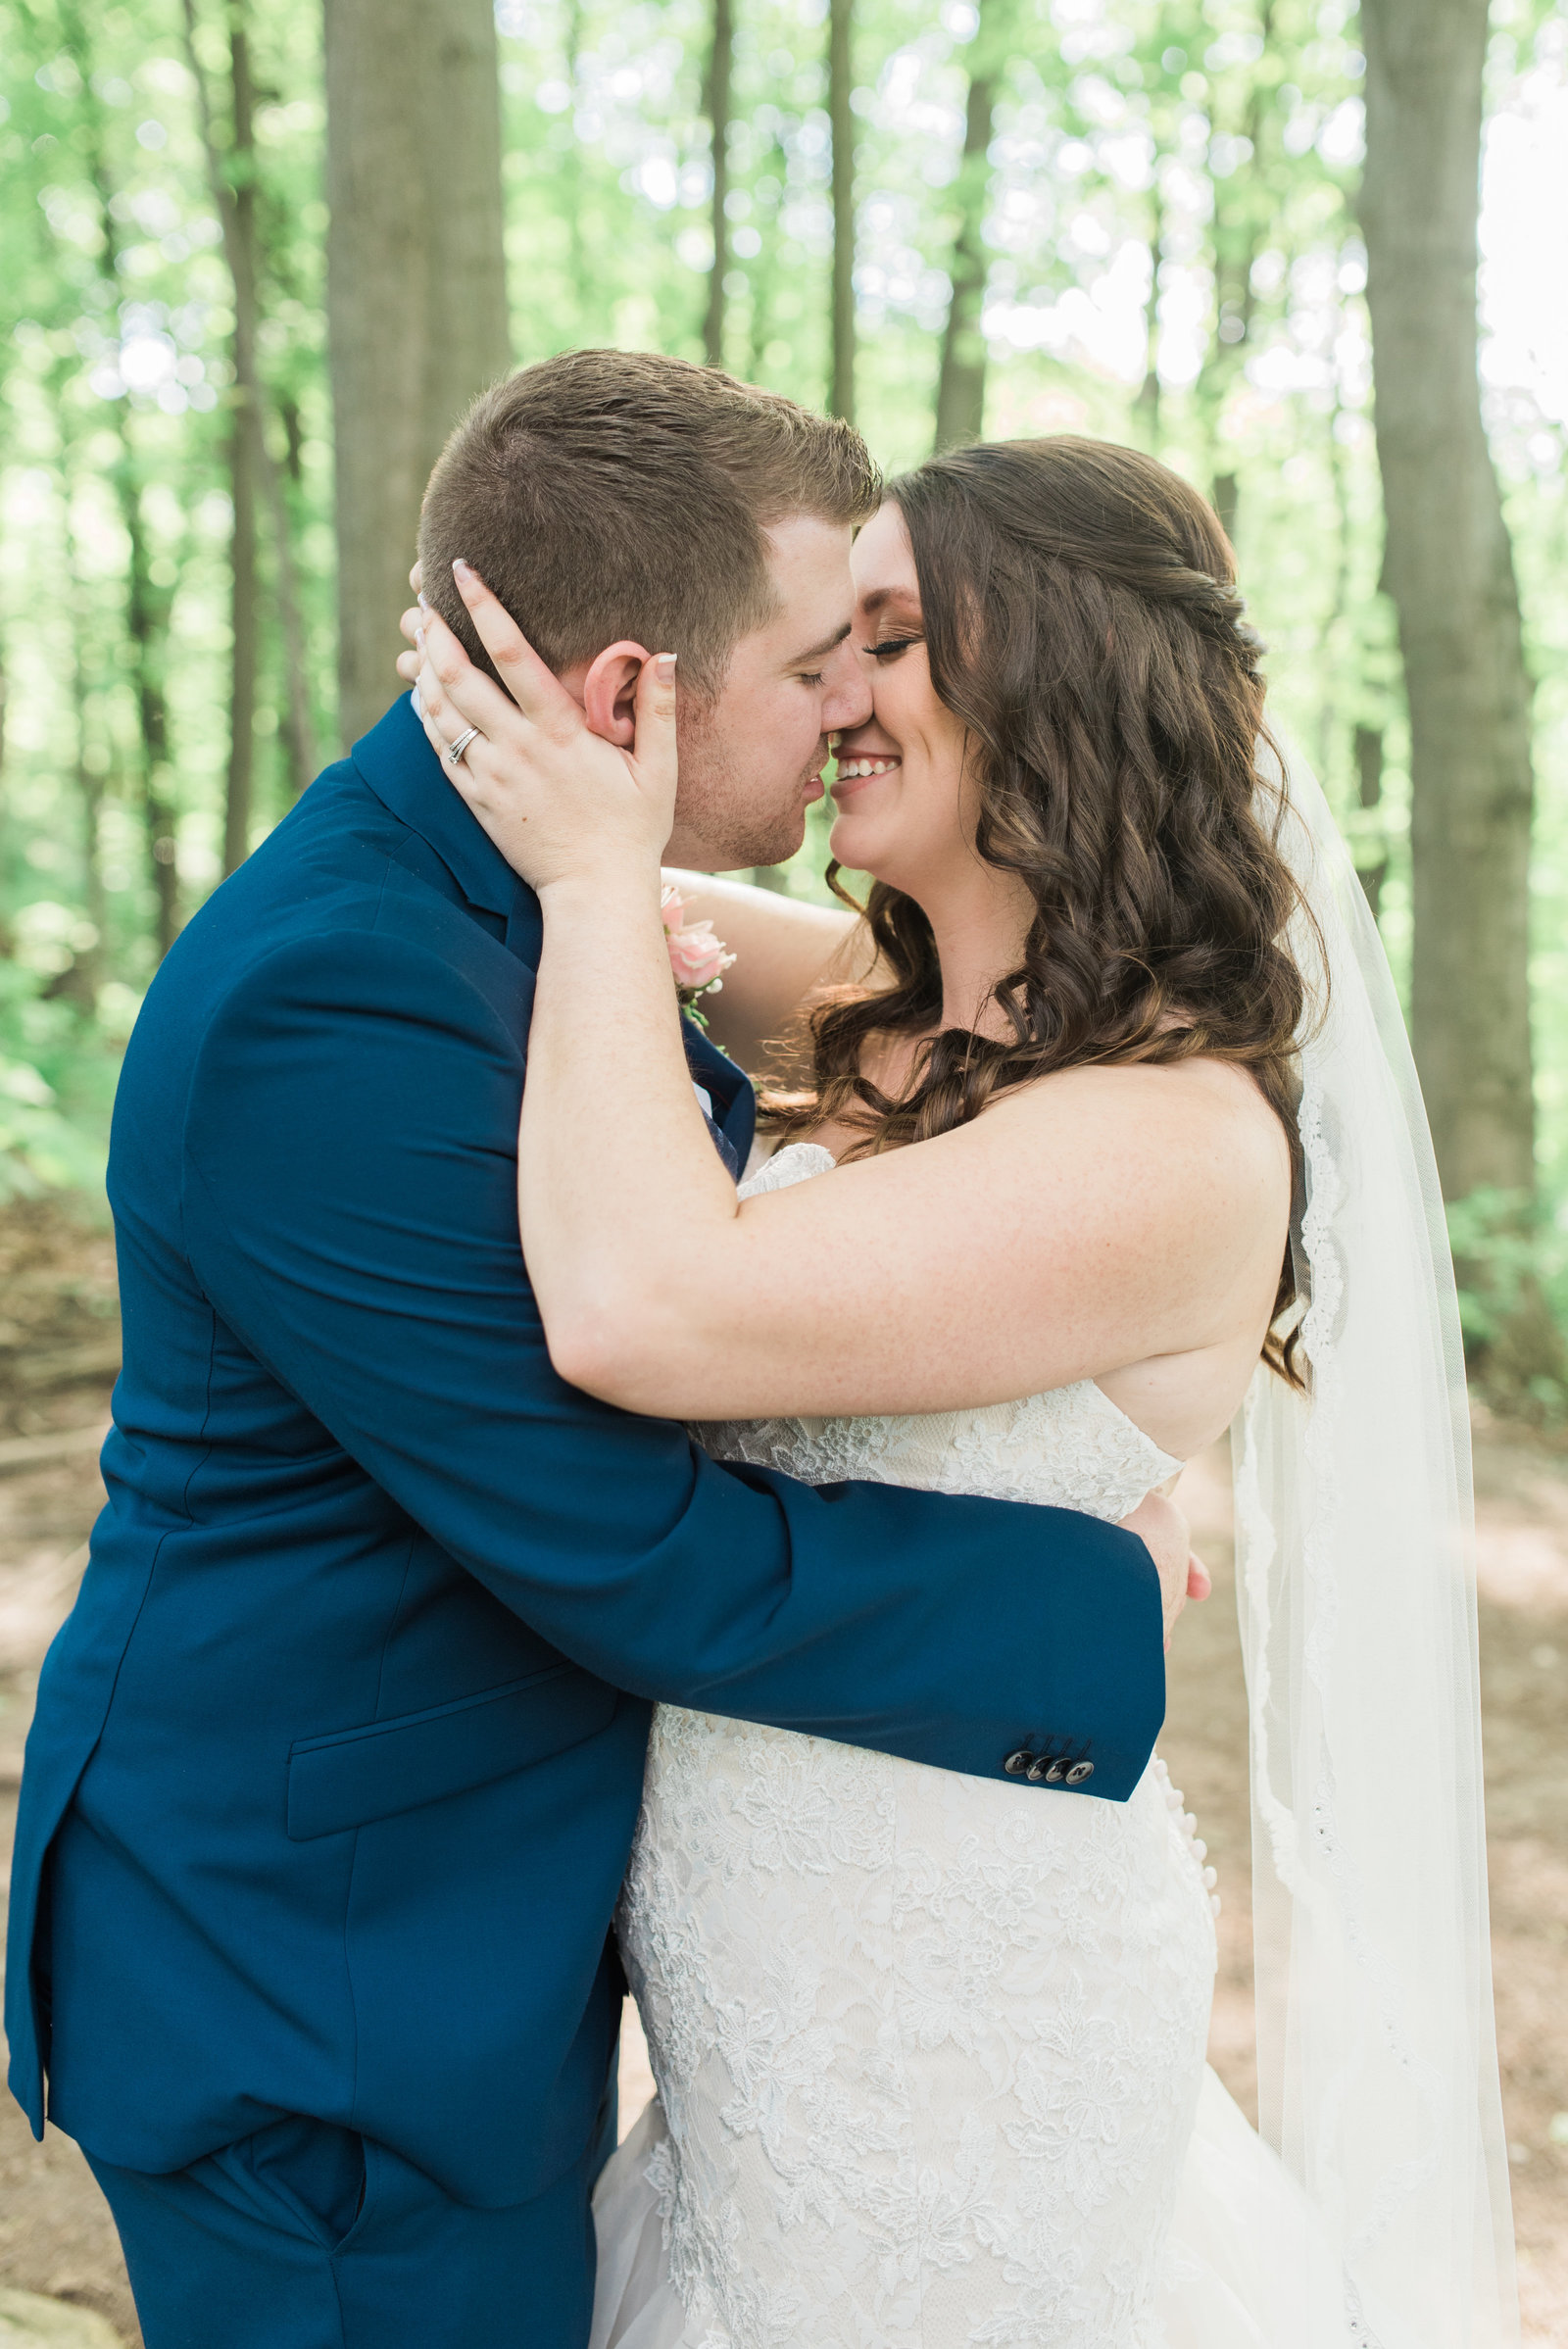 Sarah + Matt Sneak Peek-37